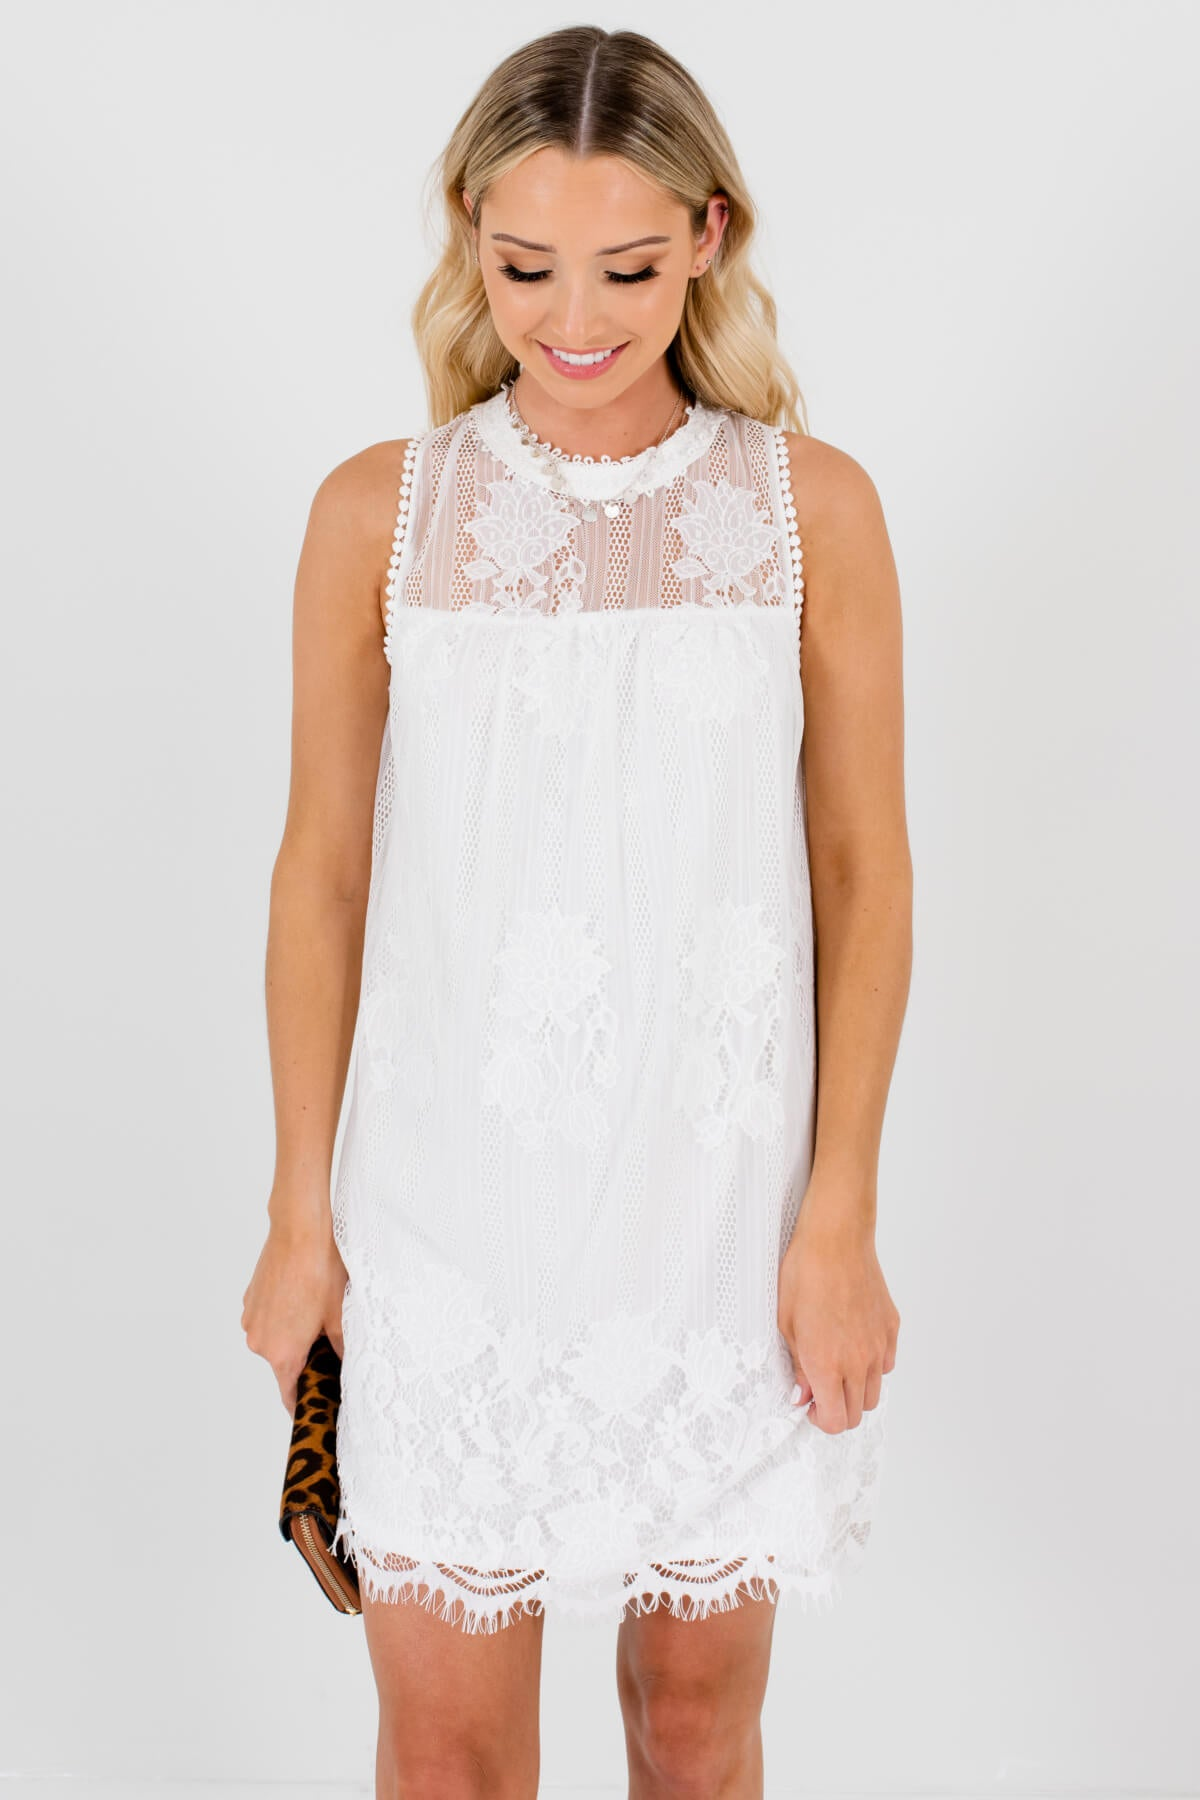 White Lace Overlay Boutique Mini Dresses for Women